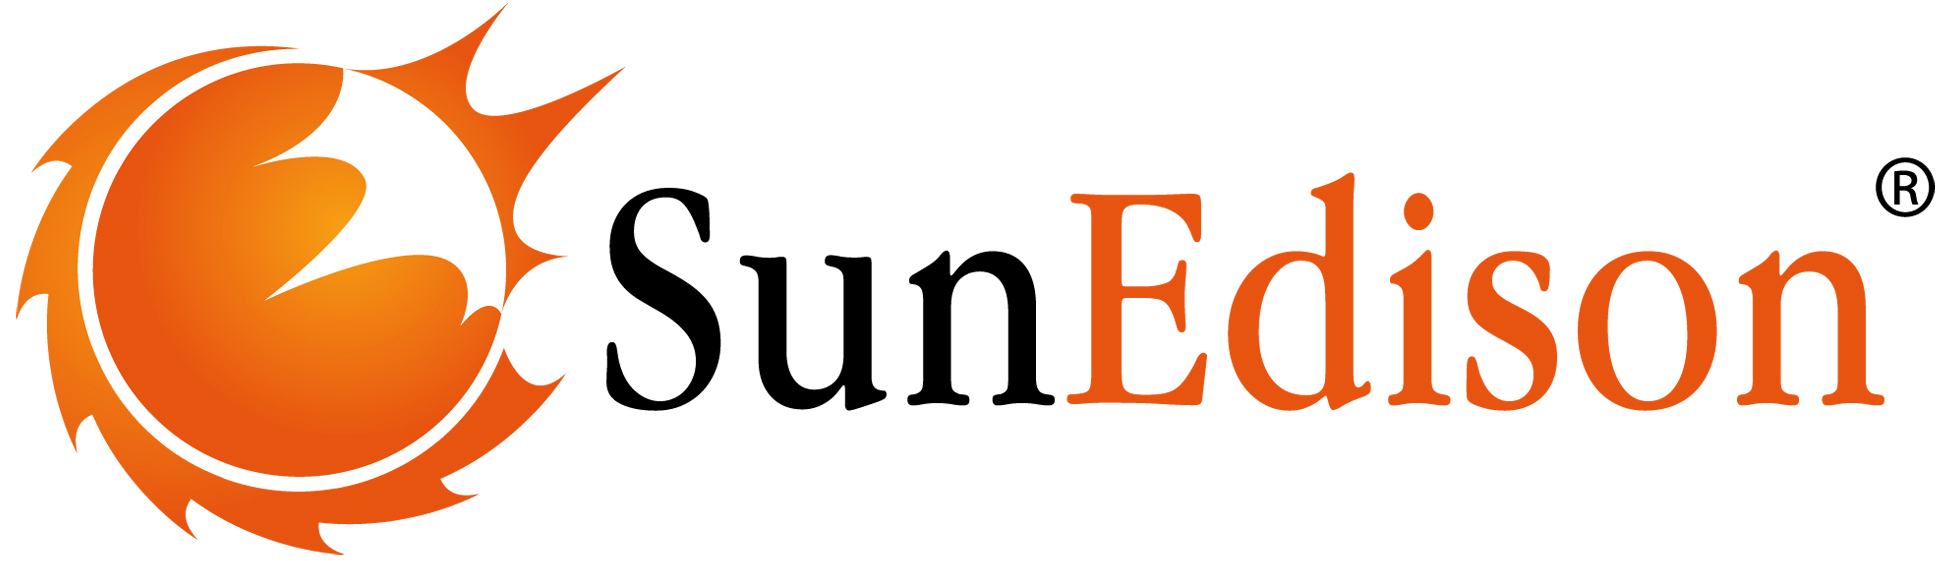 2013_05_22_SunEdison_Logo_Full-Color-high-res